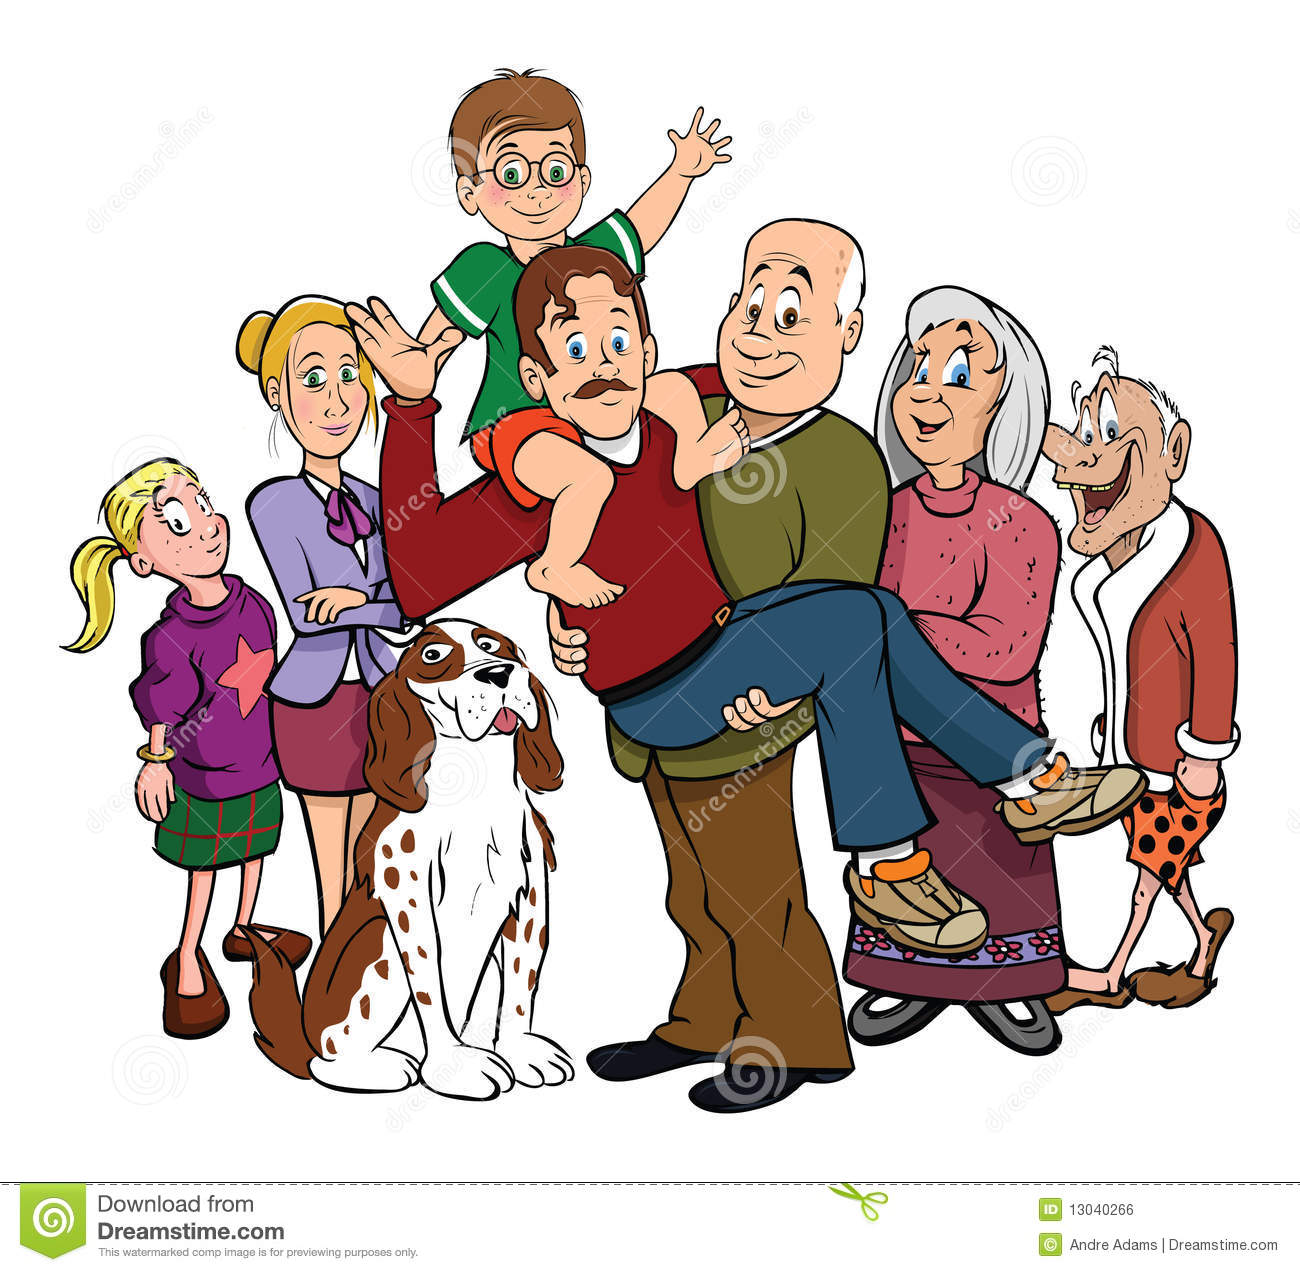 Family Portrait Reunion Royalty Free Stock Image - Image: 13040266